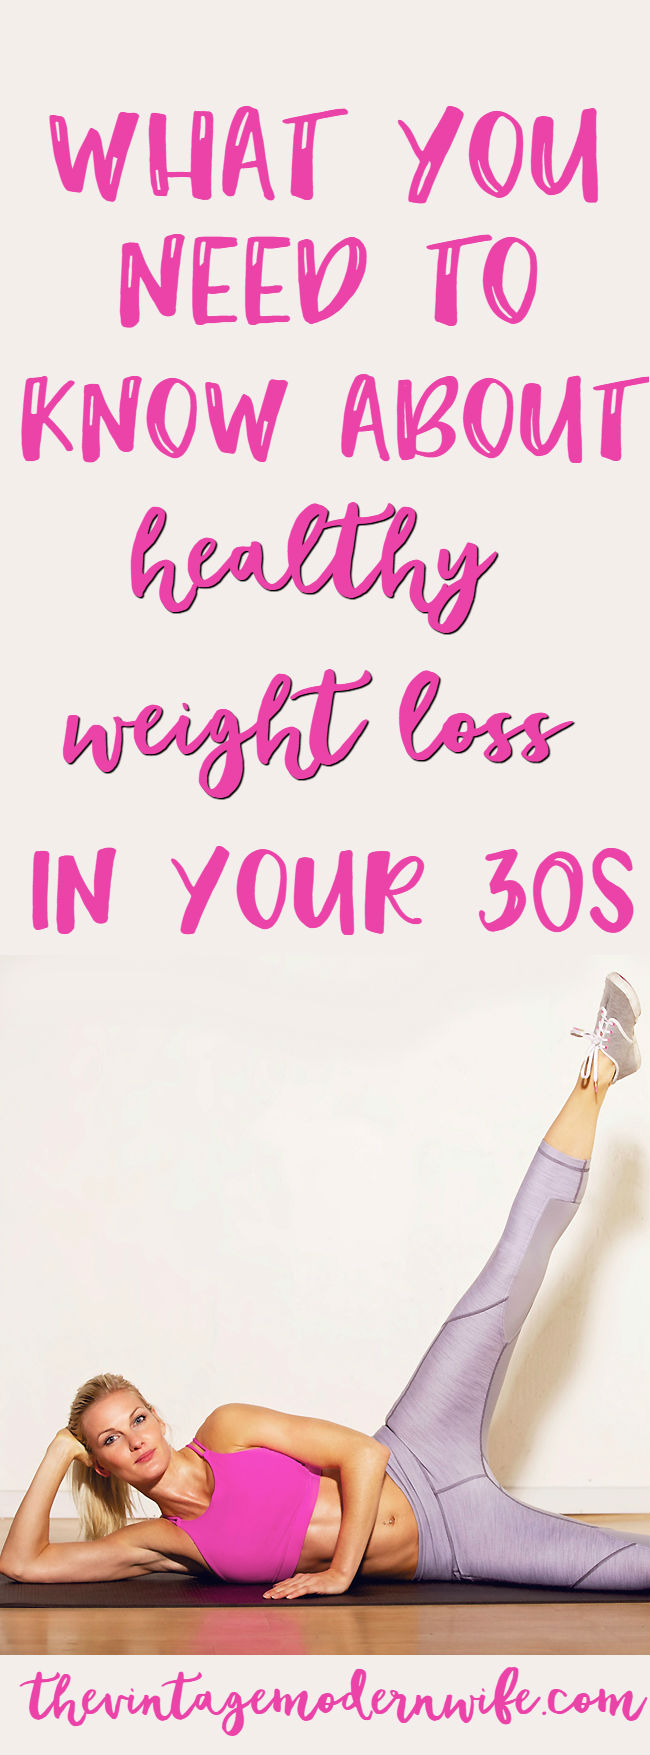 Trying to lose weight? Here's what you need to know about weight loss in your 30s! #ad #getLEAN